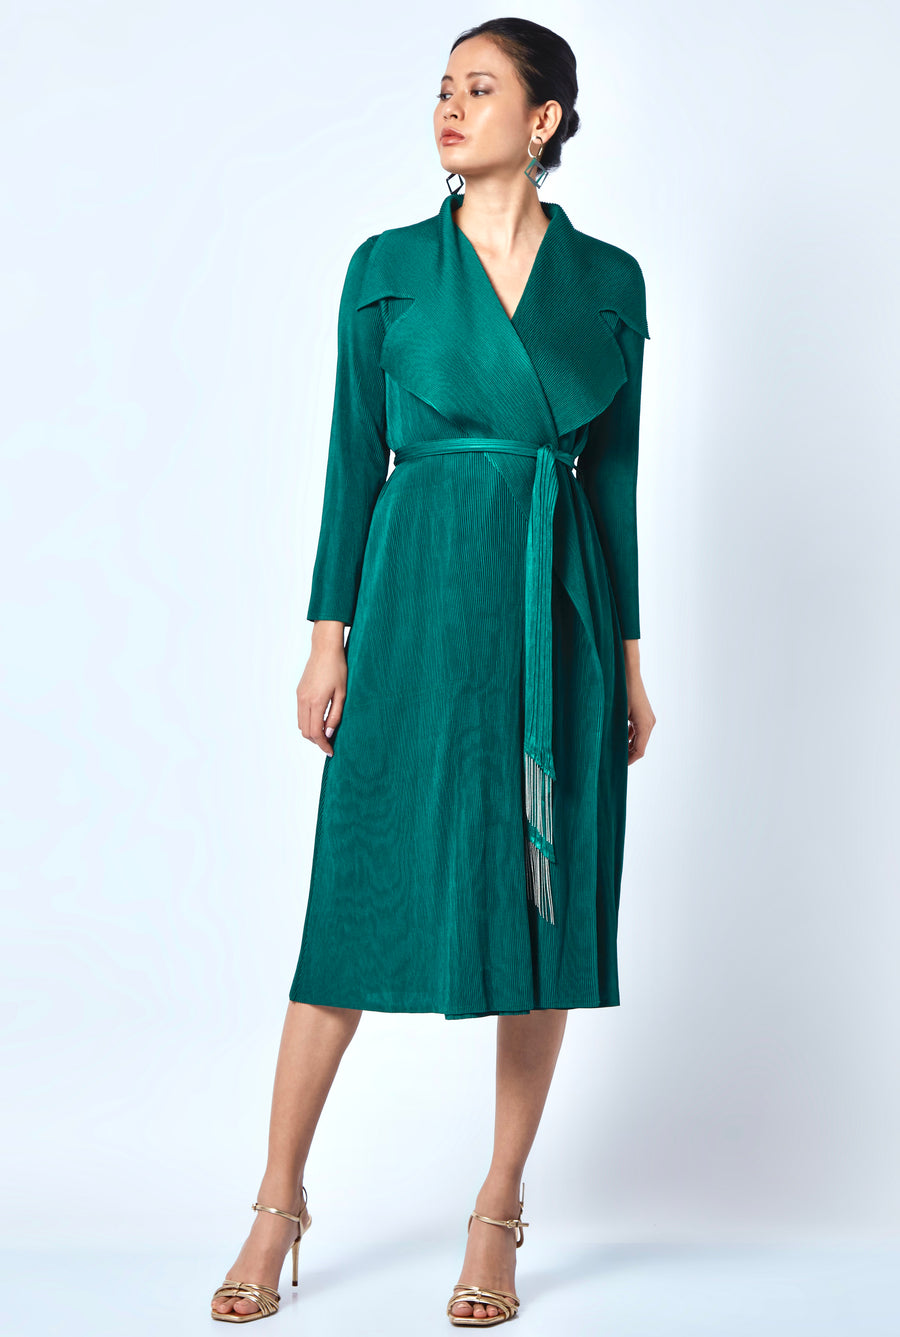 Caroline Wrap Overlay/Dress - Emerald Green